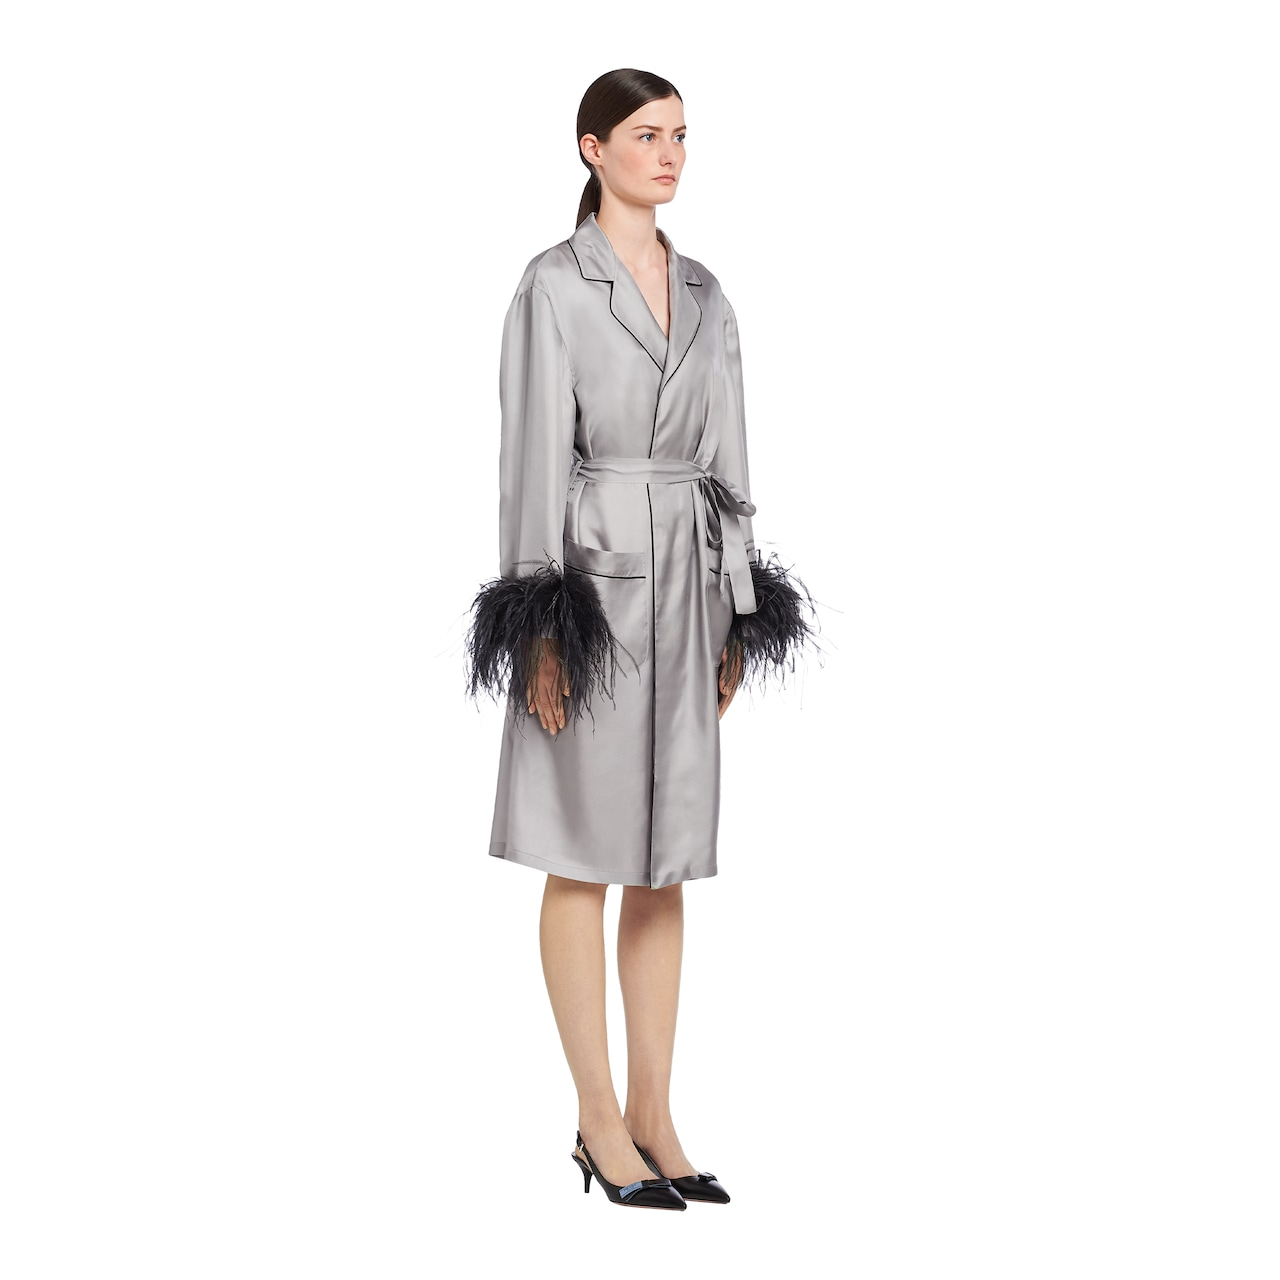 Silk coat with feathers